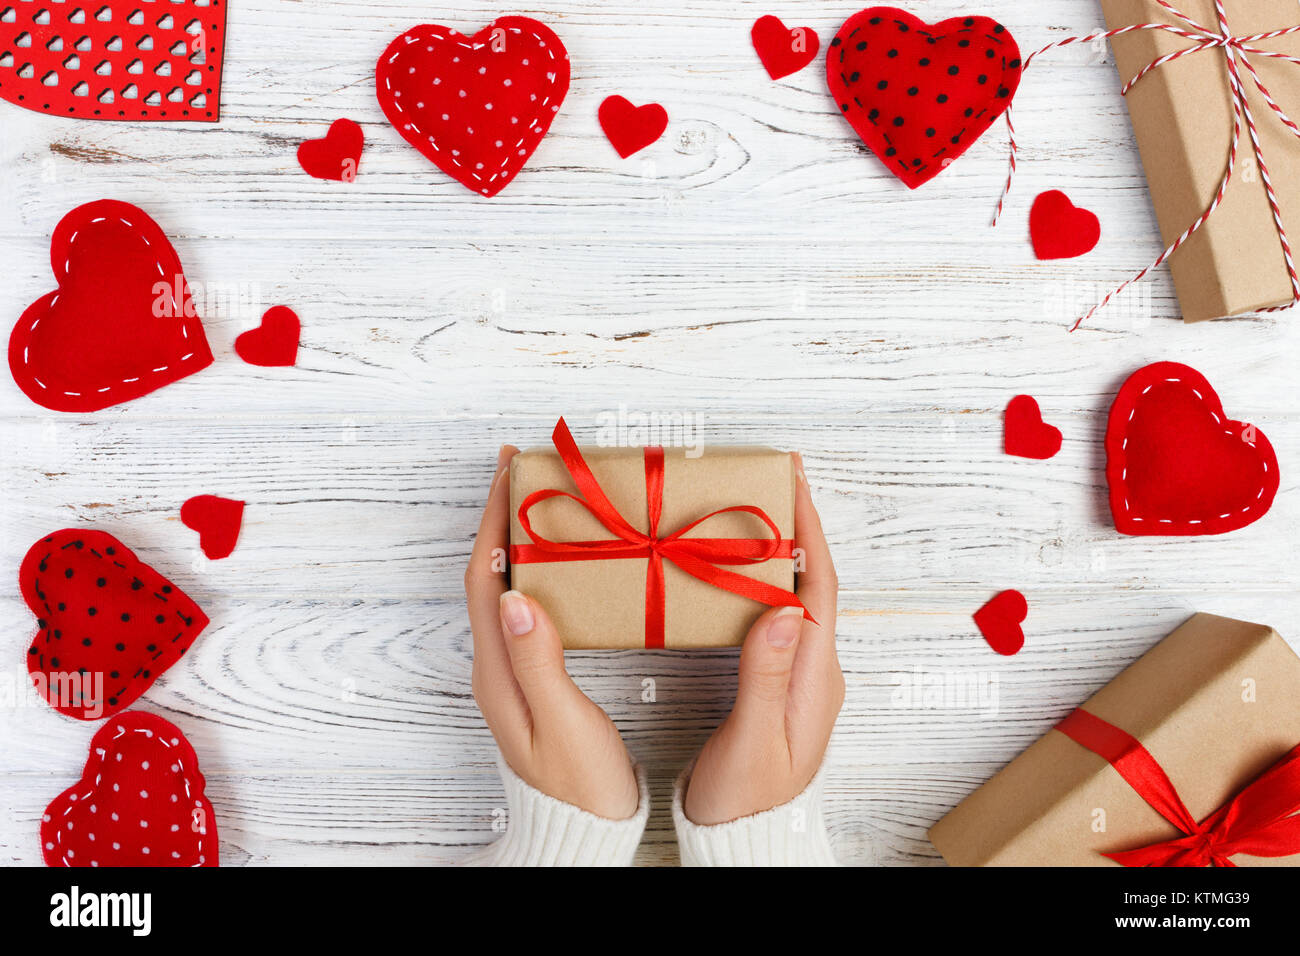 Girl Hand Give Valentine Gift Box With A Red Heart Inside On A White